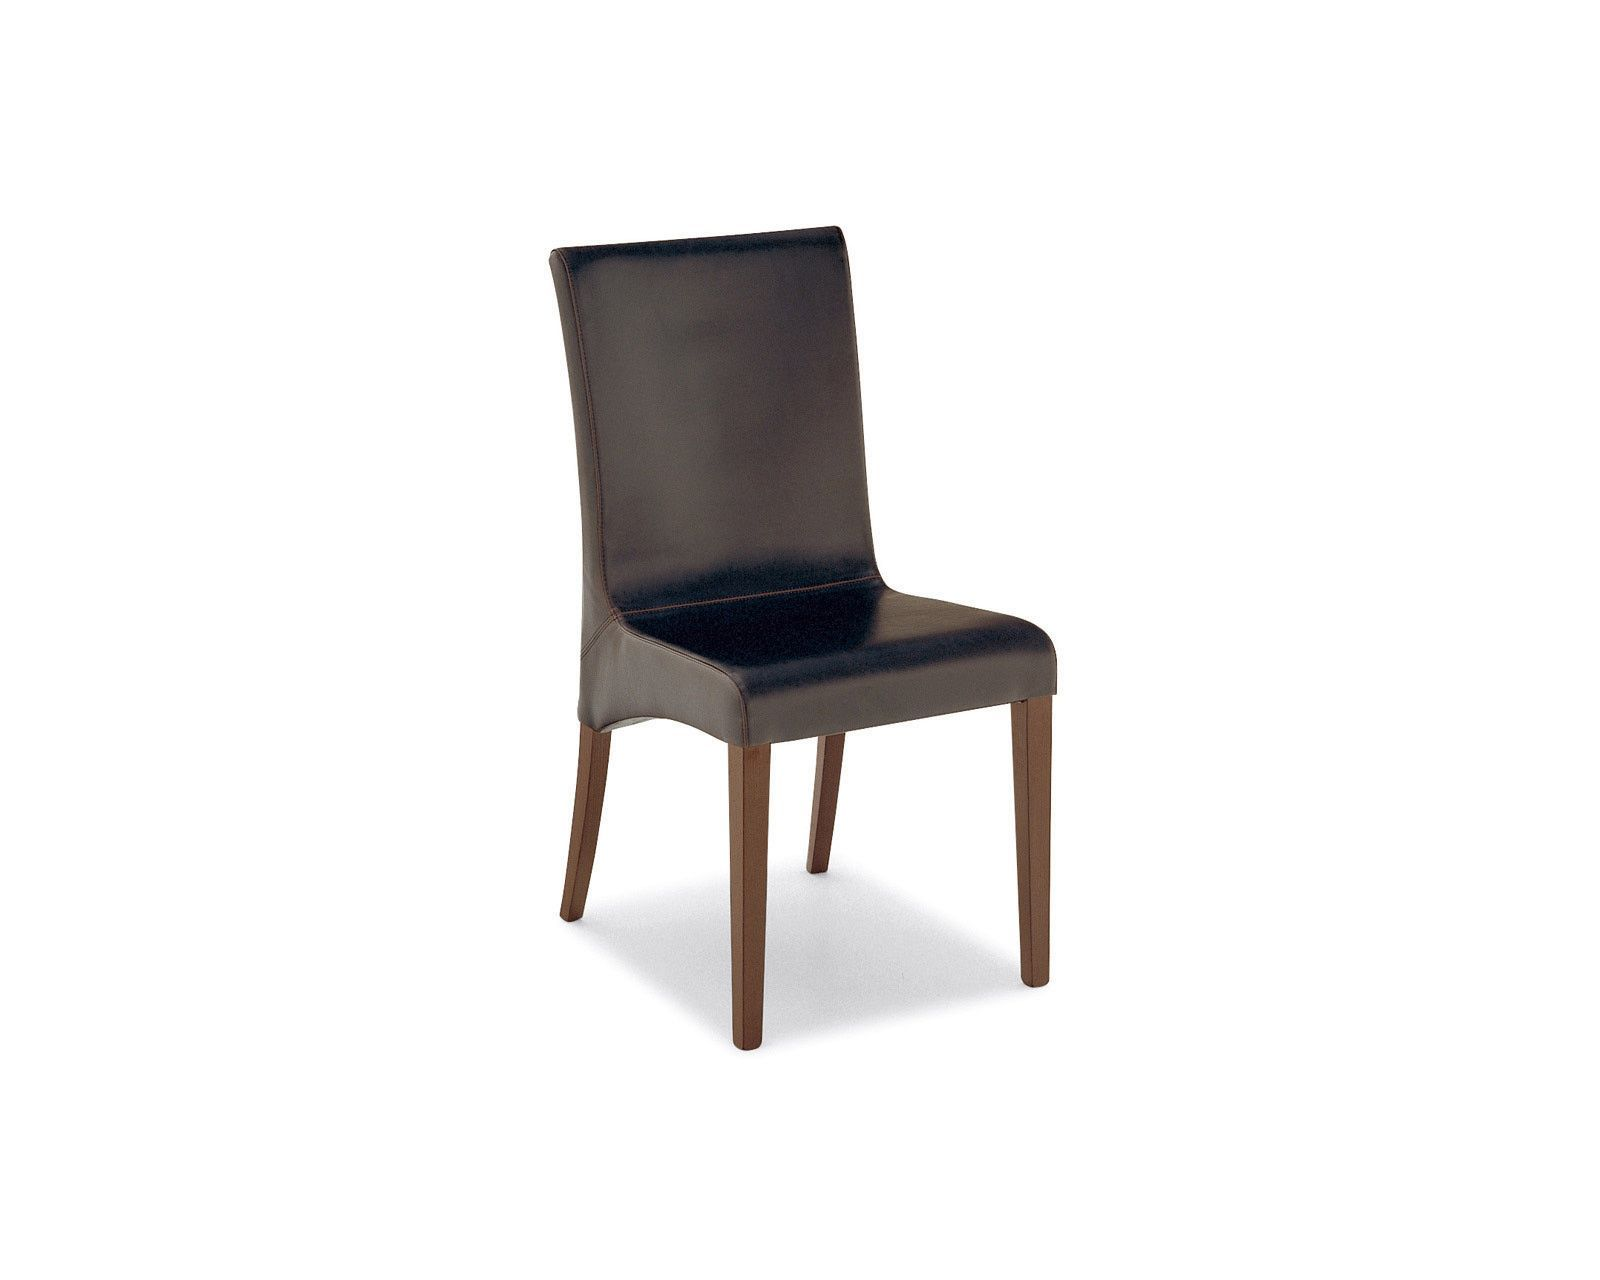 Novecento Vintage Leather Chair by Calligaris